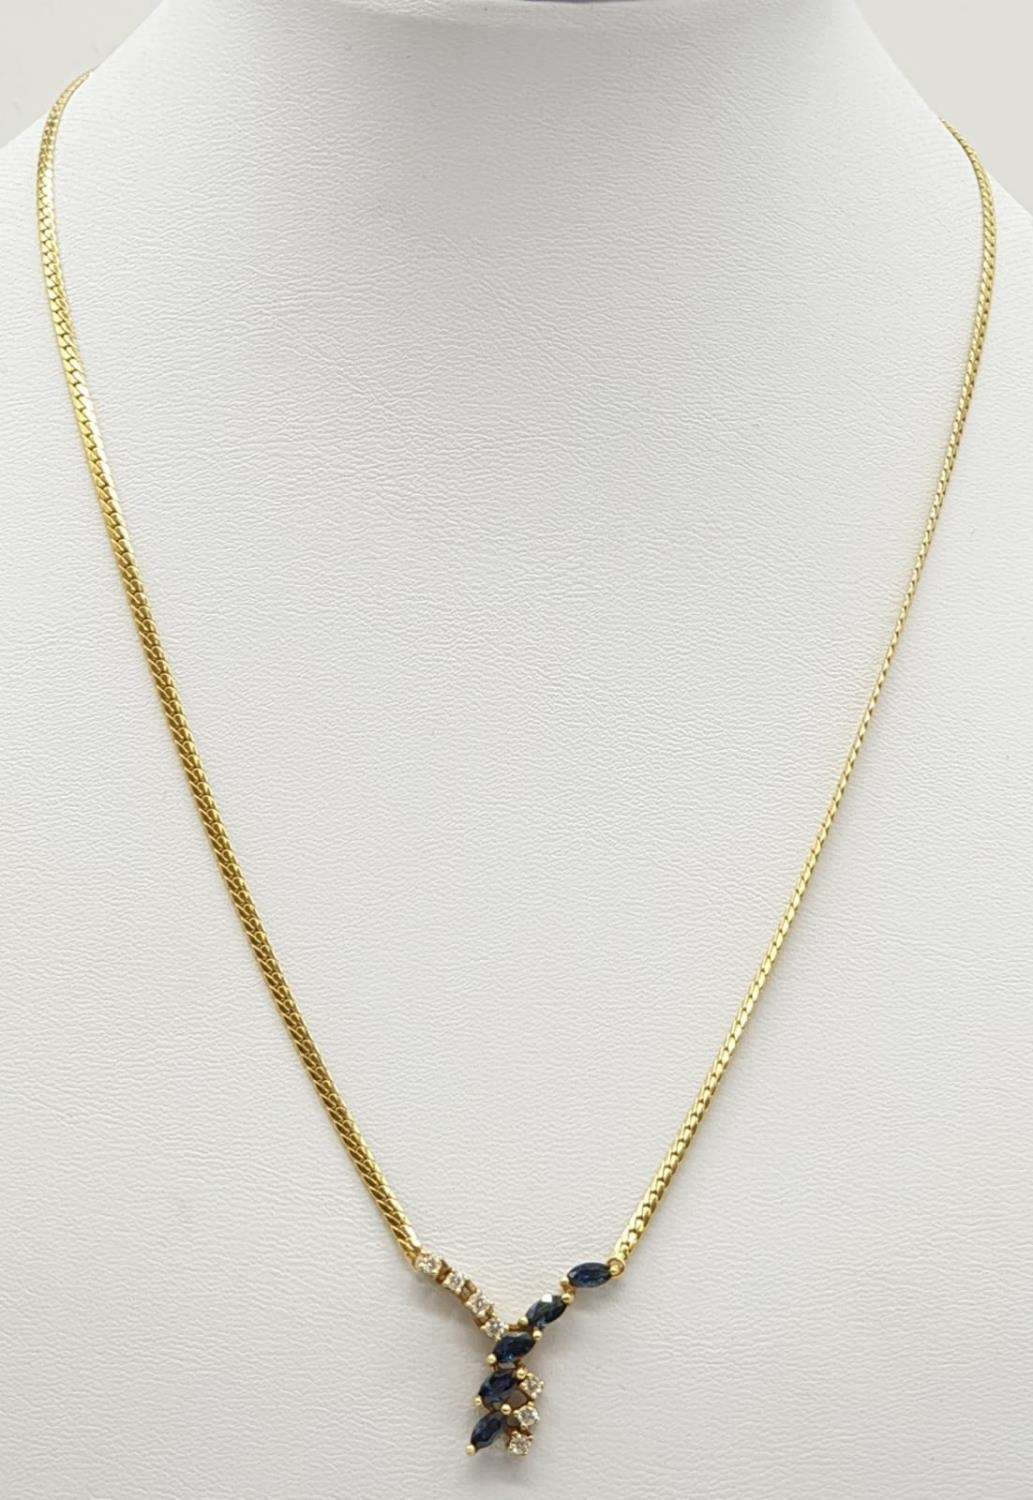 18ct Yellow gold diamond and sapphire collar style necklace Weight 8.8g, Approx.. 0.25ct of diamond. - Image 5 of 6